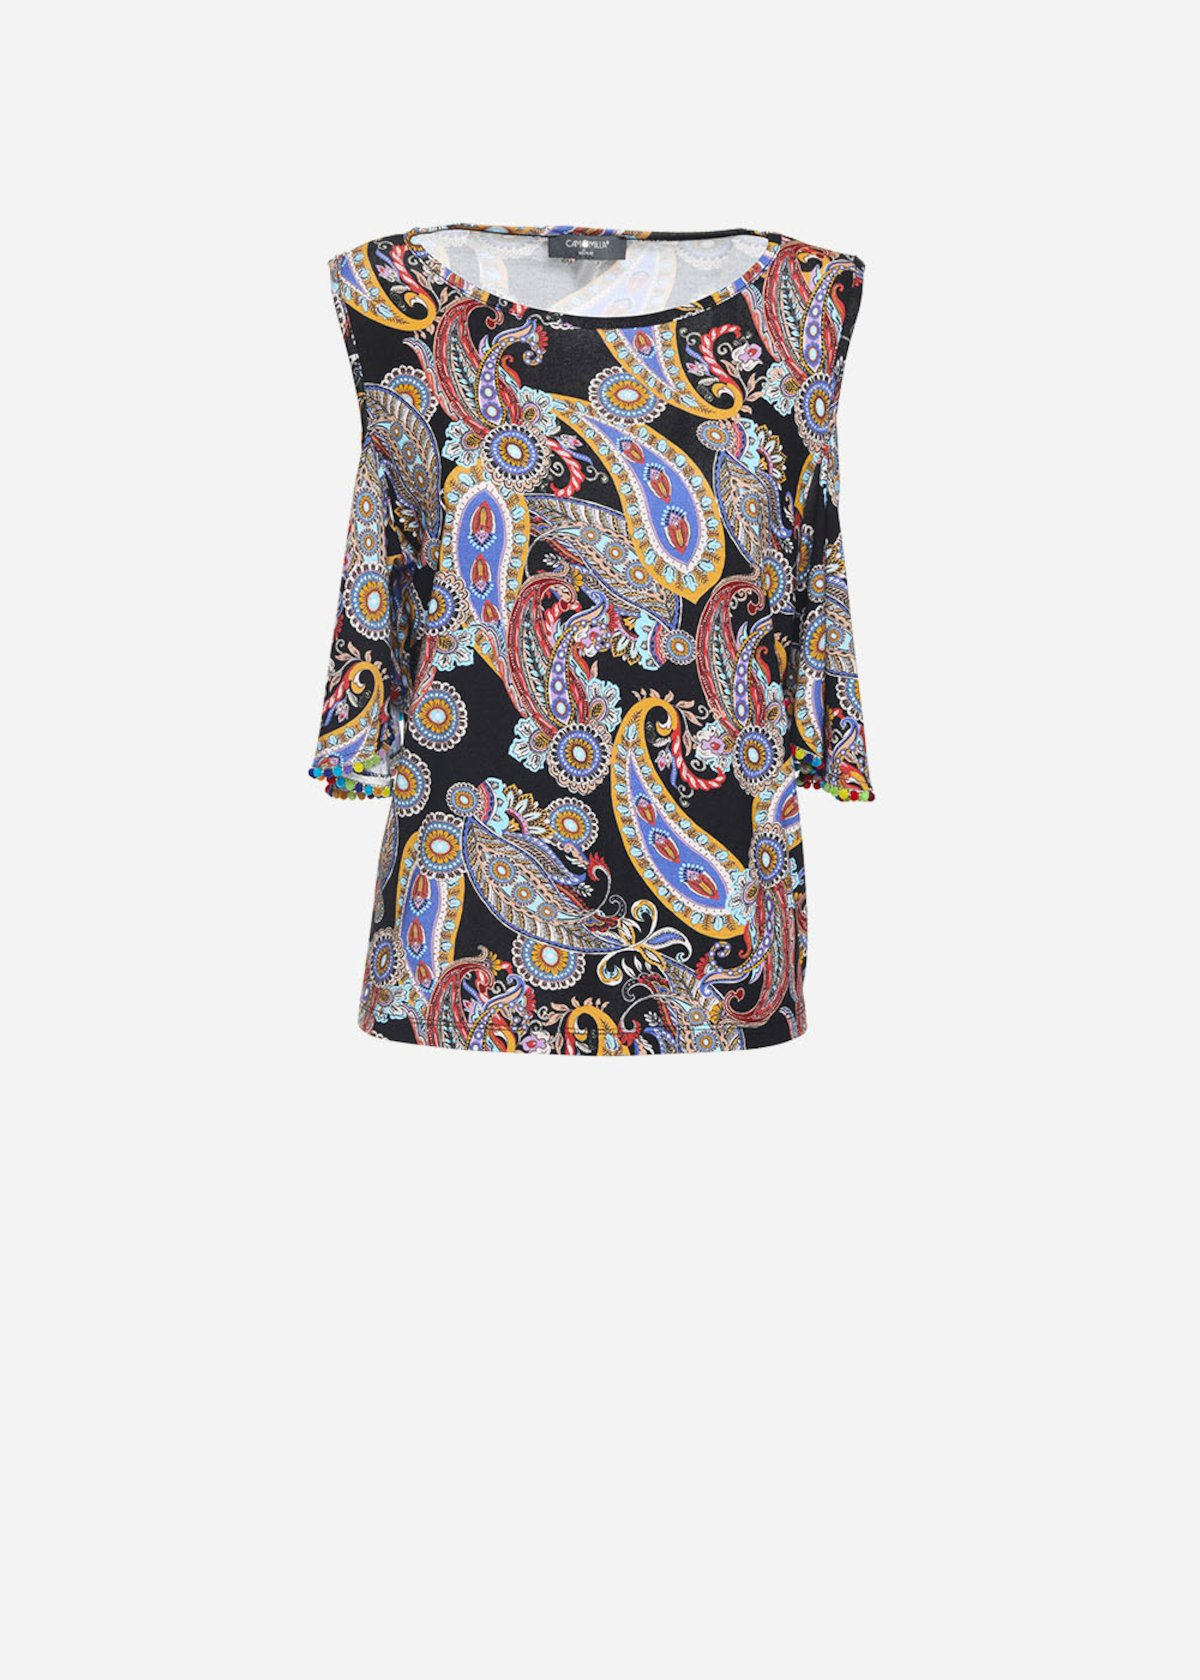 Indian patterned Semply T-shirt with shoulder sleeves